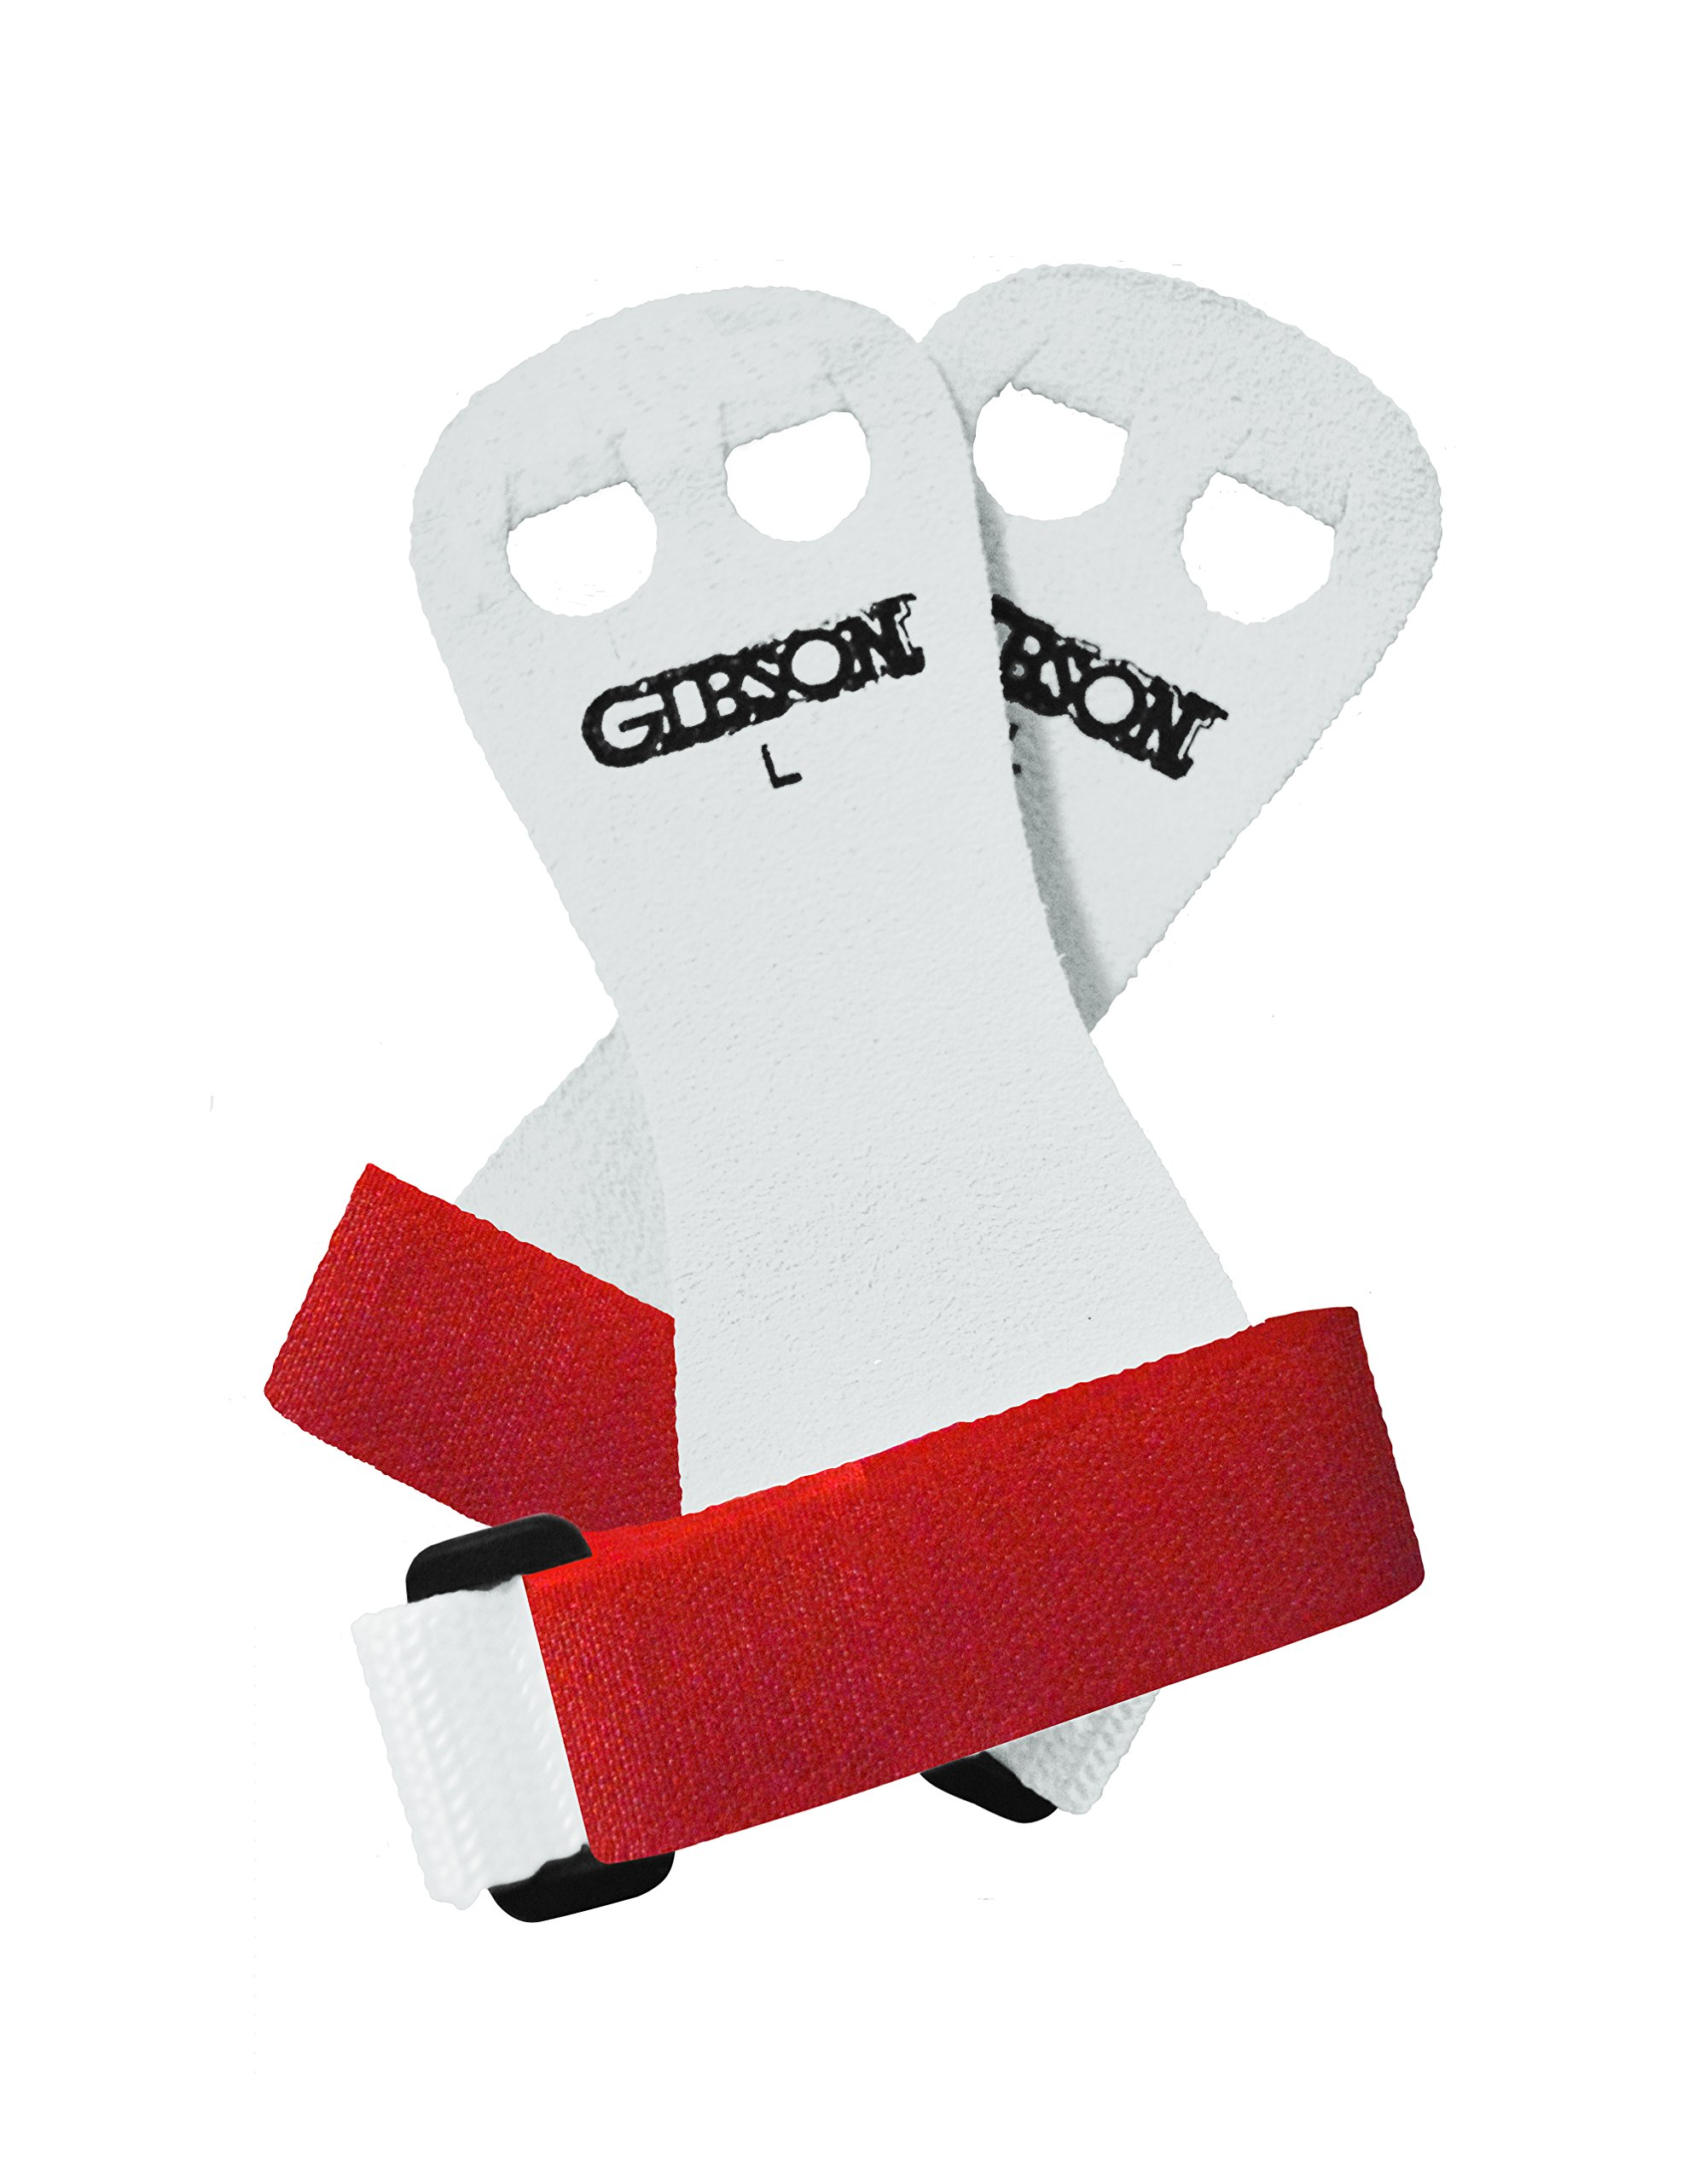 Gibson Athletic Rainbow Palm Grips, White/Red, Large